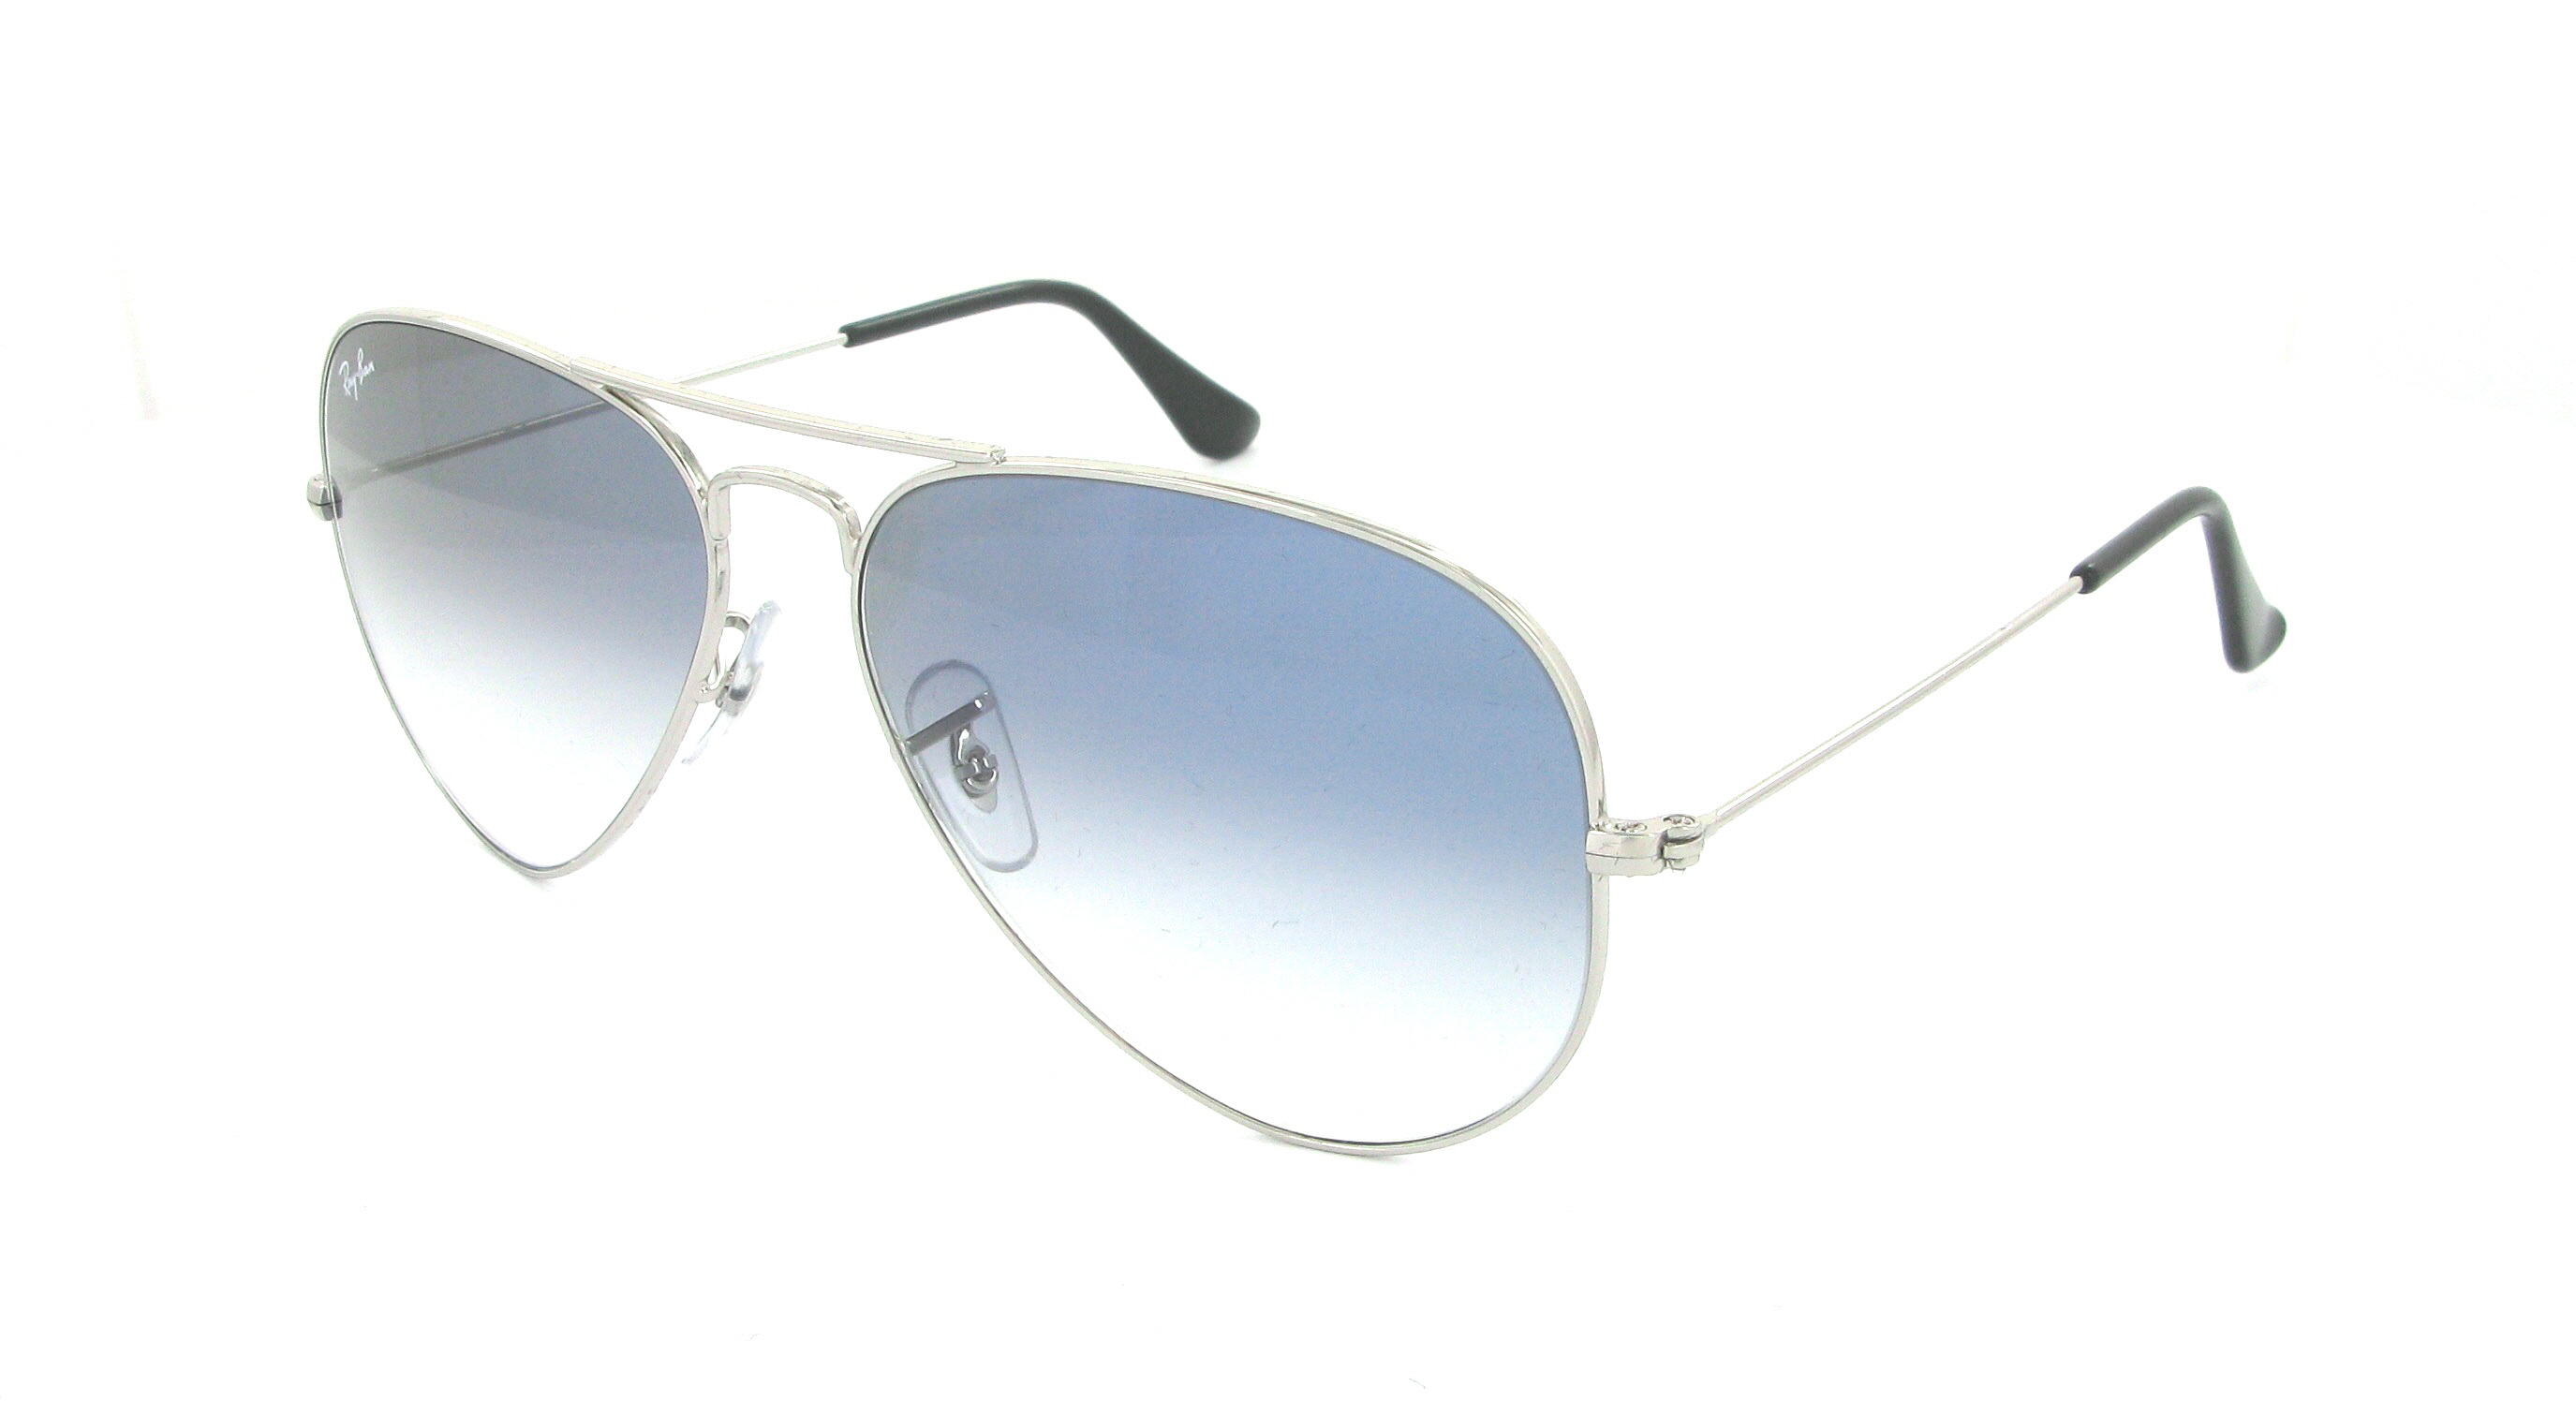 Ray ban aviator homme taille 58 for Ray ban aviator miroir homme